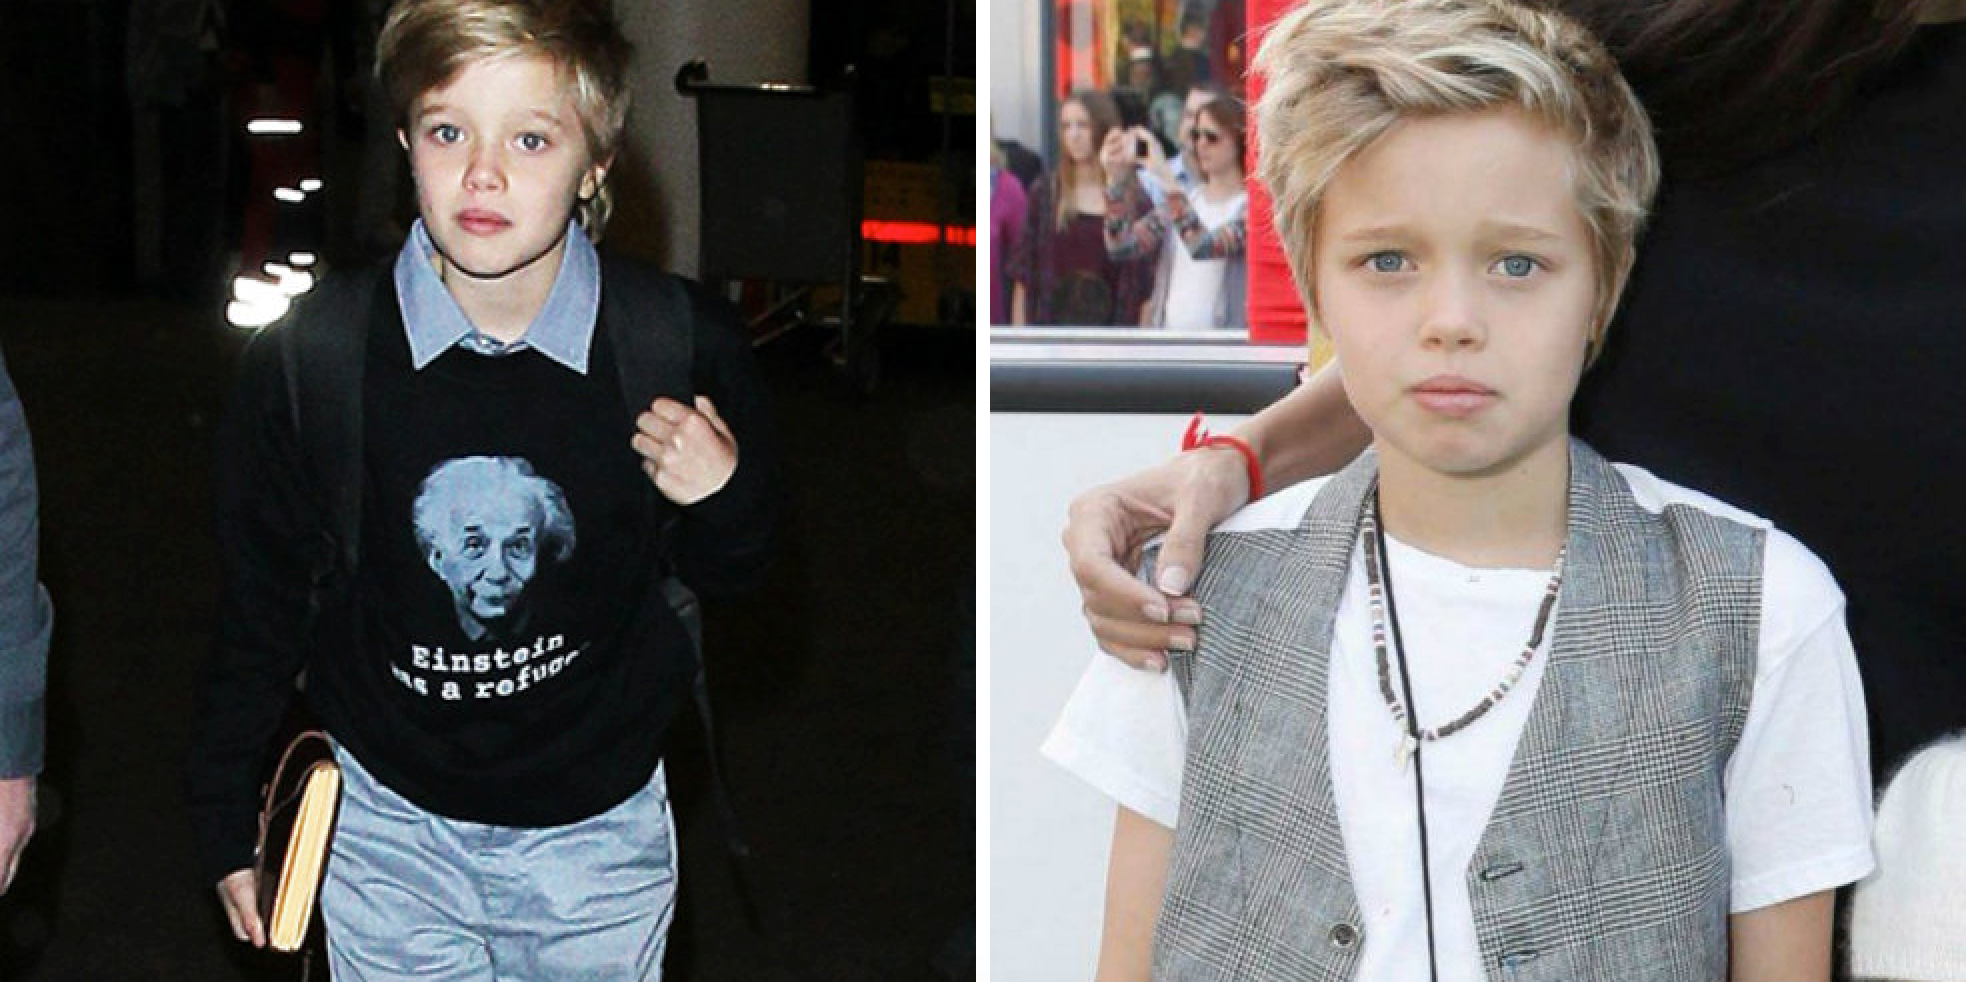 Times Shiloh Pitt Outdid Angelina With Her Amazing Style